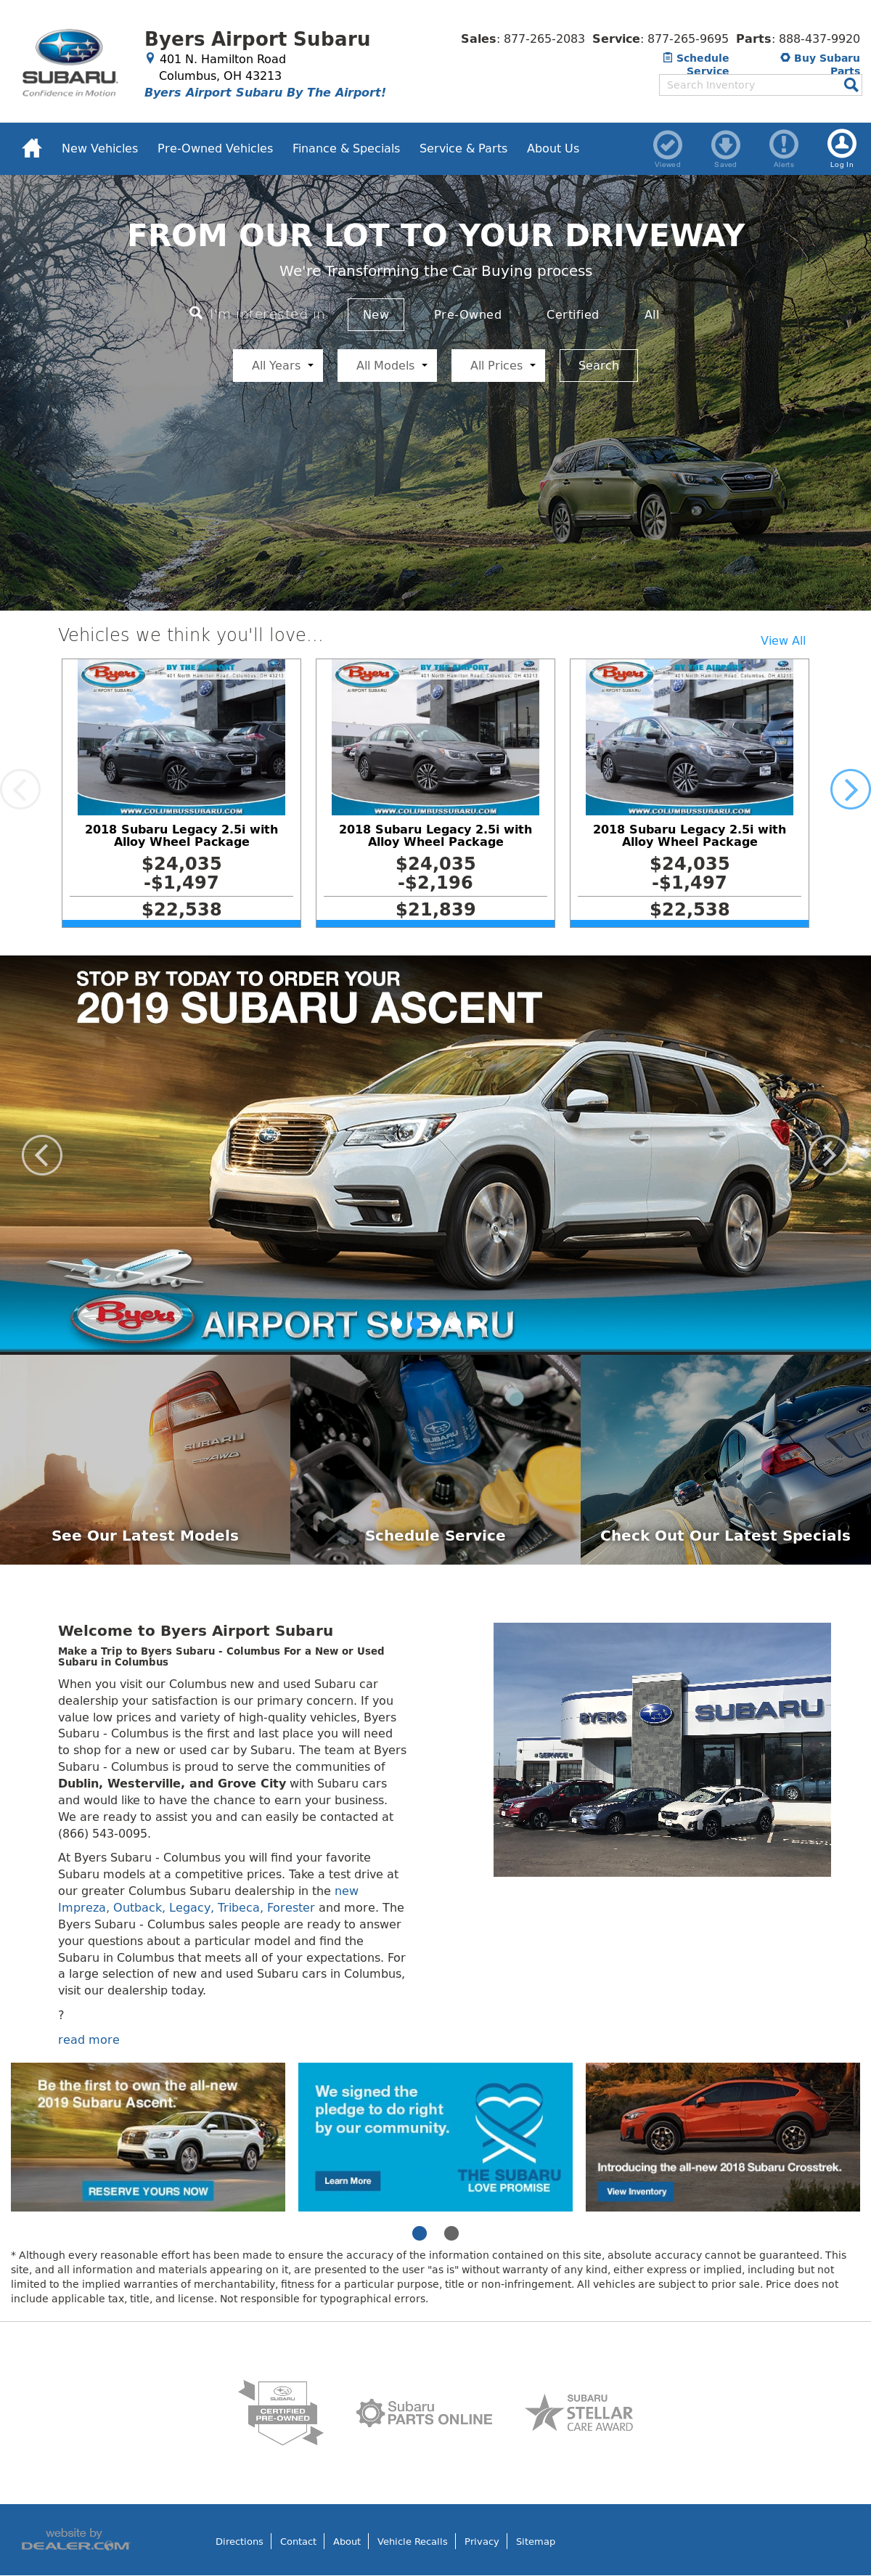 Byers Airport Subaru >> Byers Airport Subaru Competitors Revenue And Employees Owler